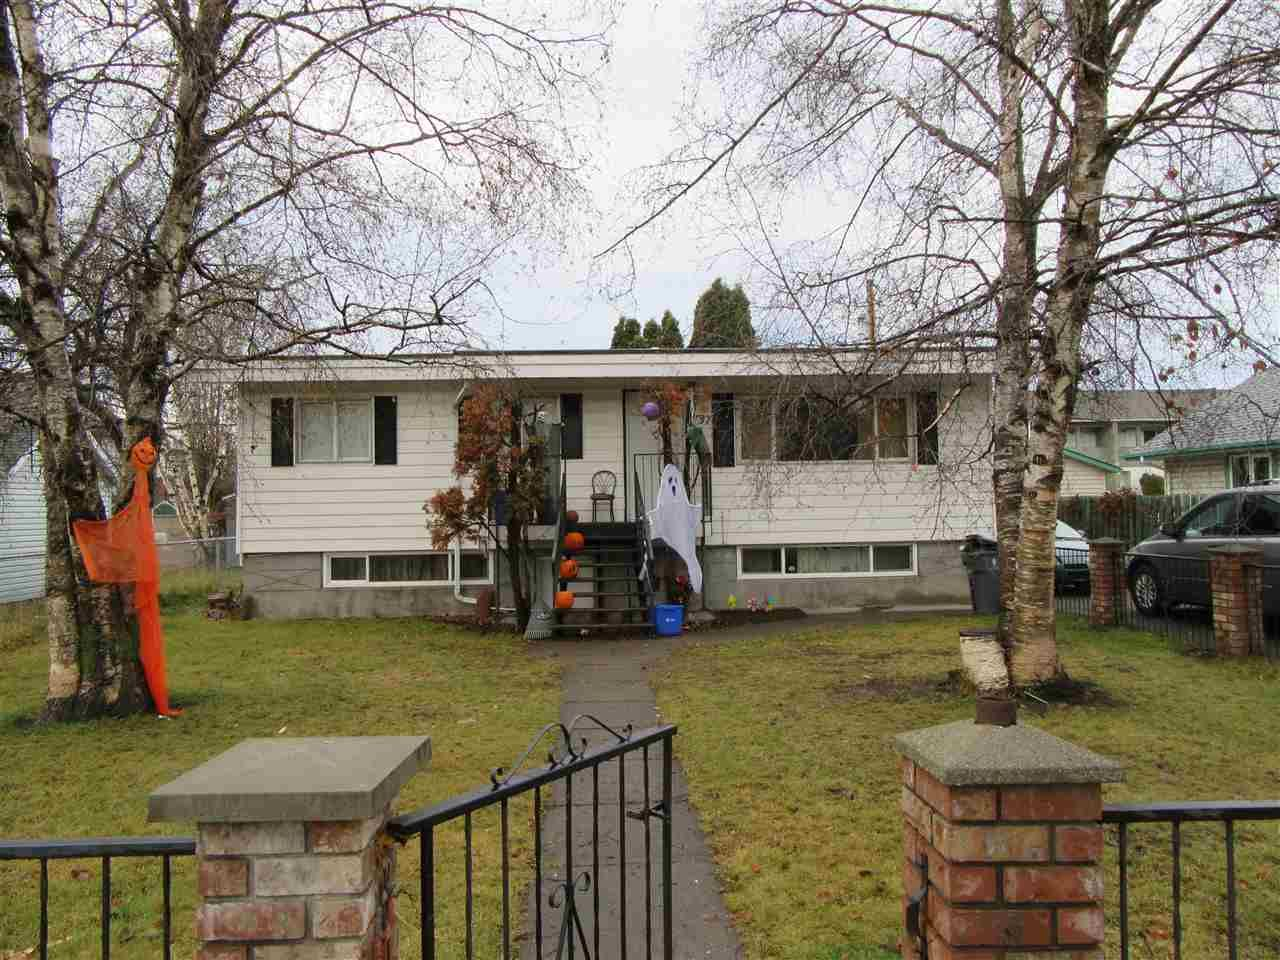 Main Photo: 1737 REDWOOD Street in Prince George: Van Bow House for sale (PG City Central (Zone 72))  : MLS®# R2417839